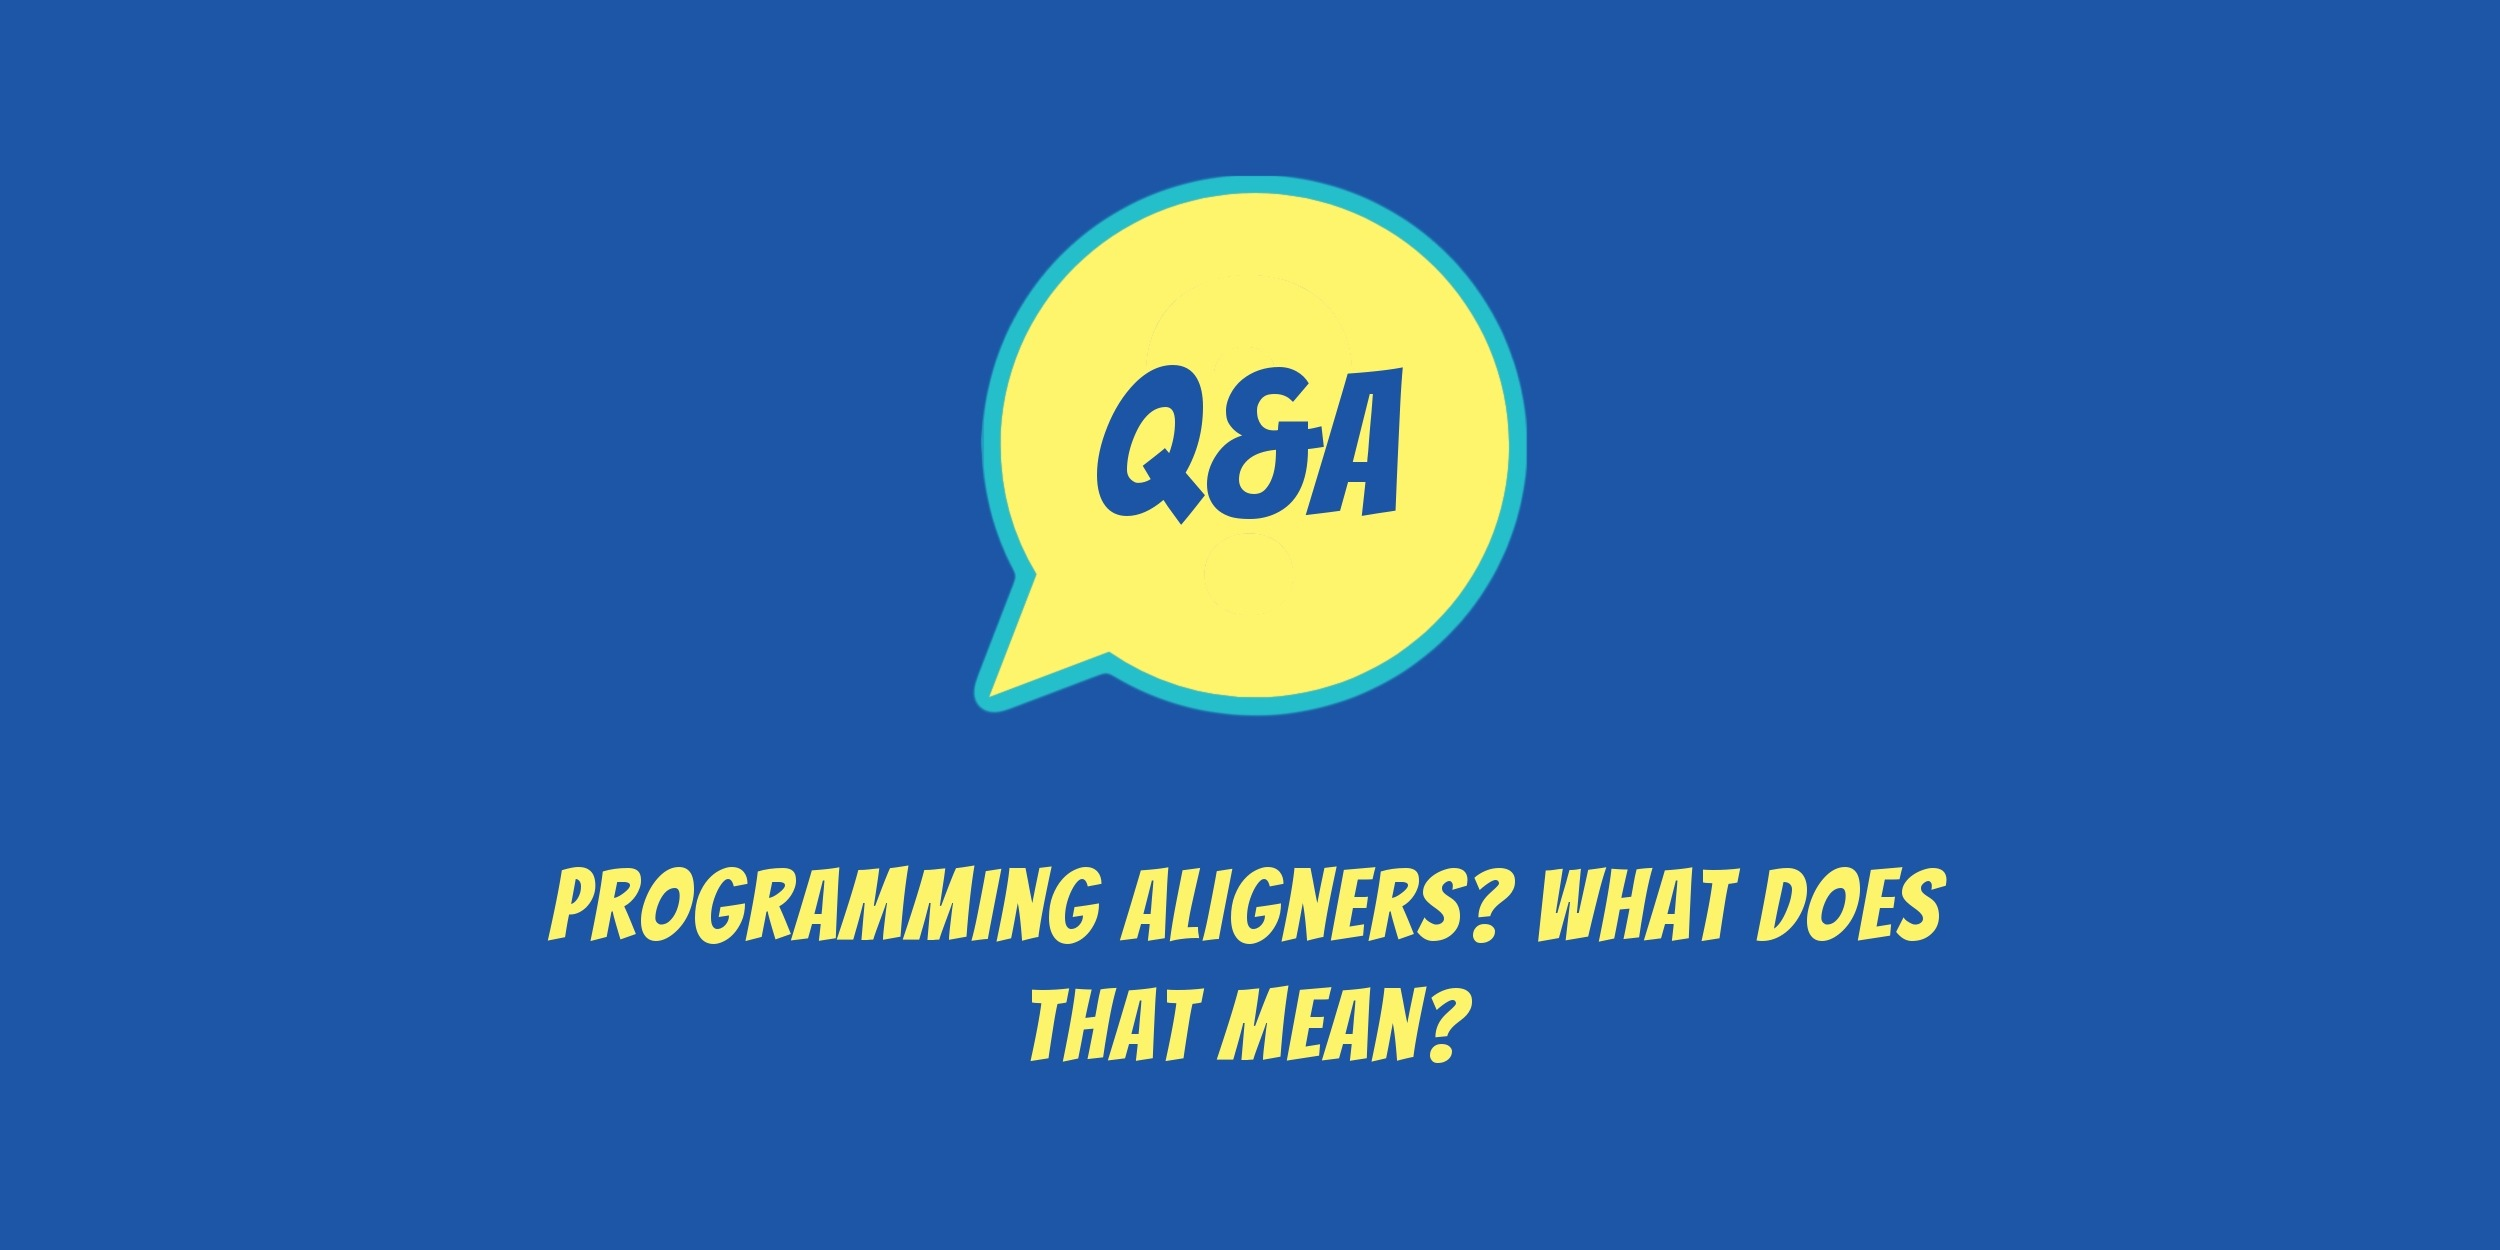 Q&A with Dr Antosz and Dr Vincelli: Programming aligners